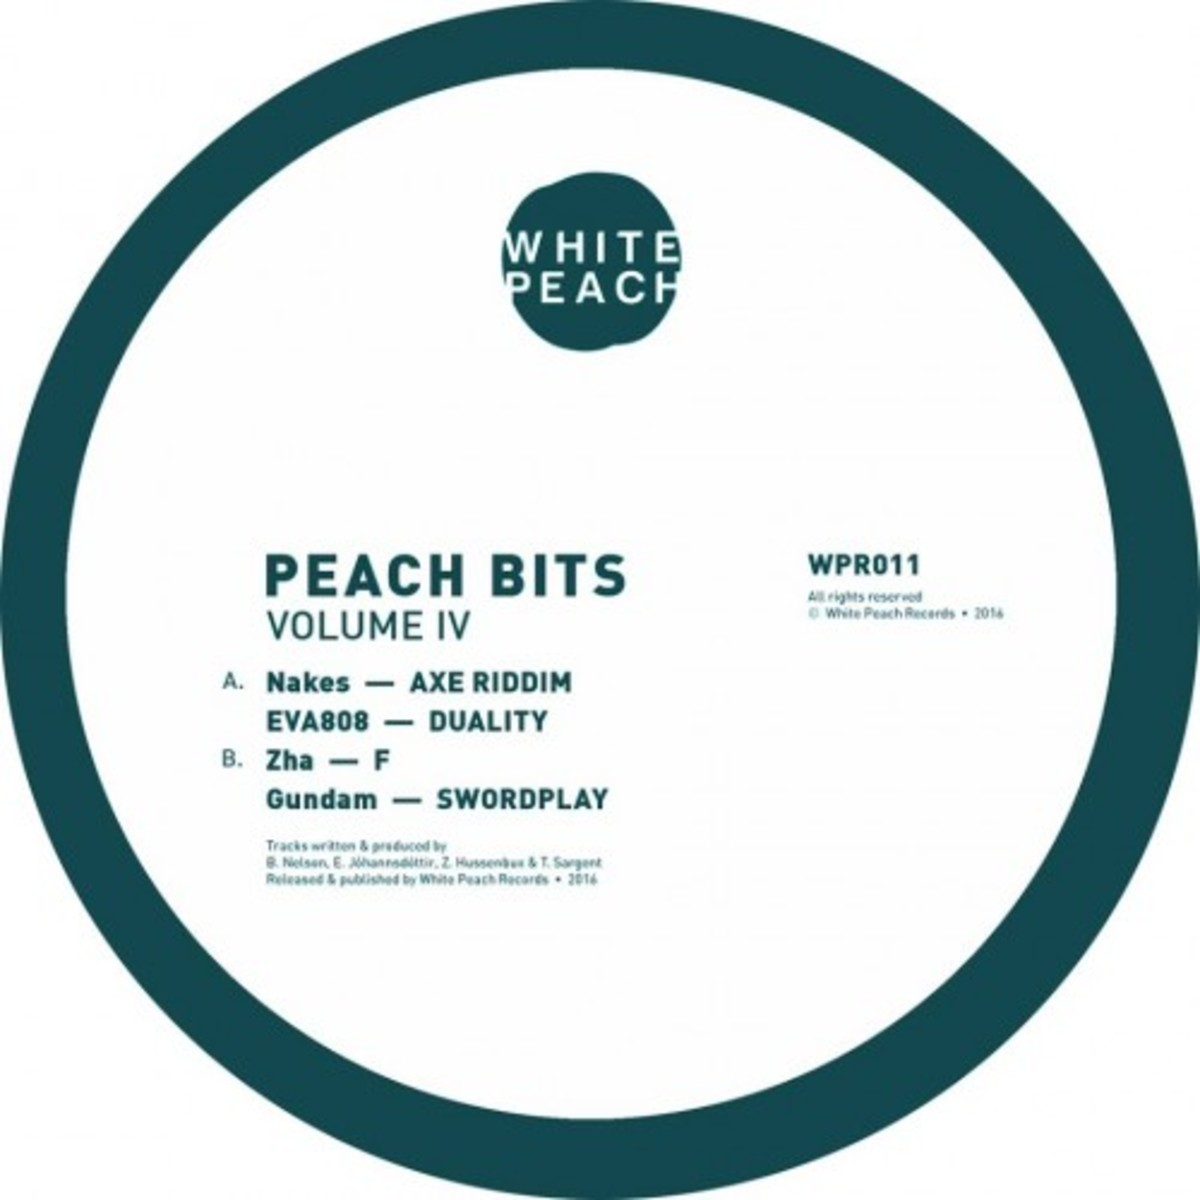 Nakes debut release on White Peach Records.